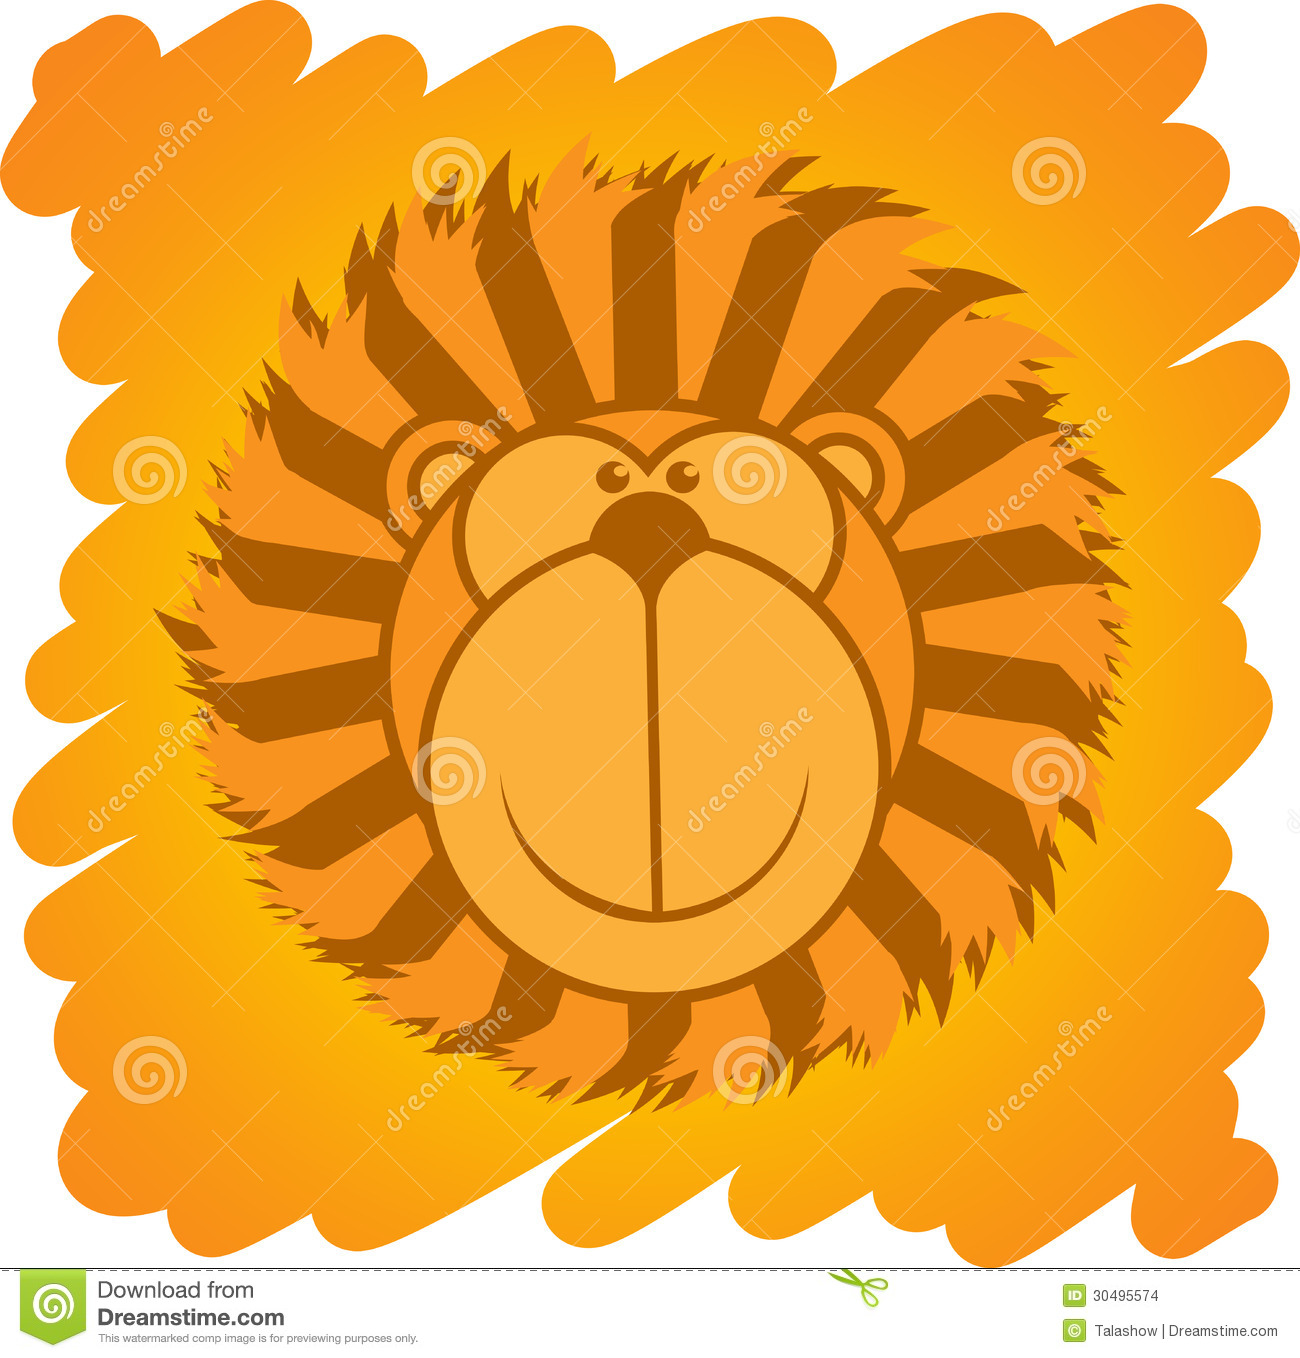 Cartoon Lion Stock Images - Image: 30495574